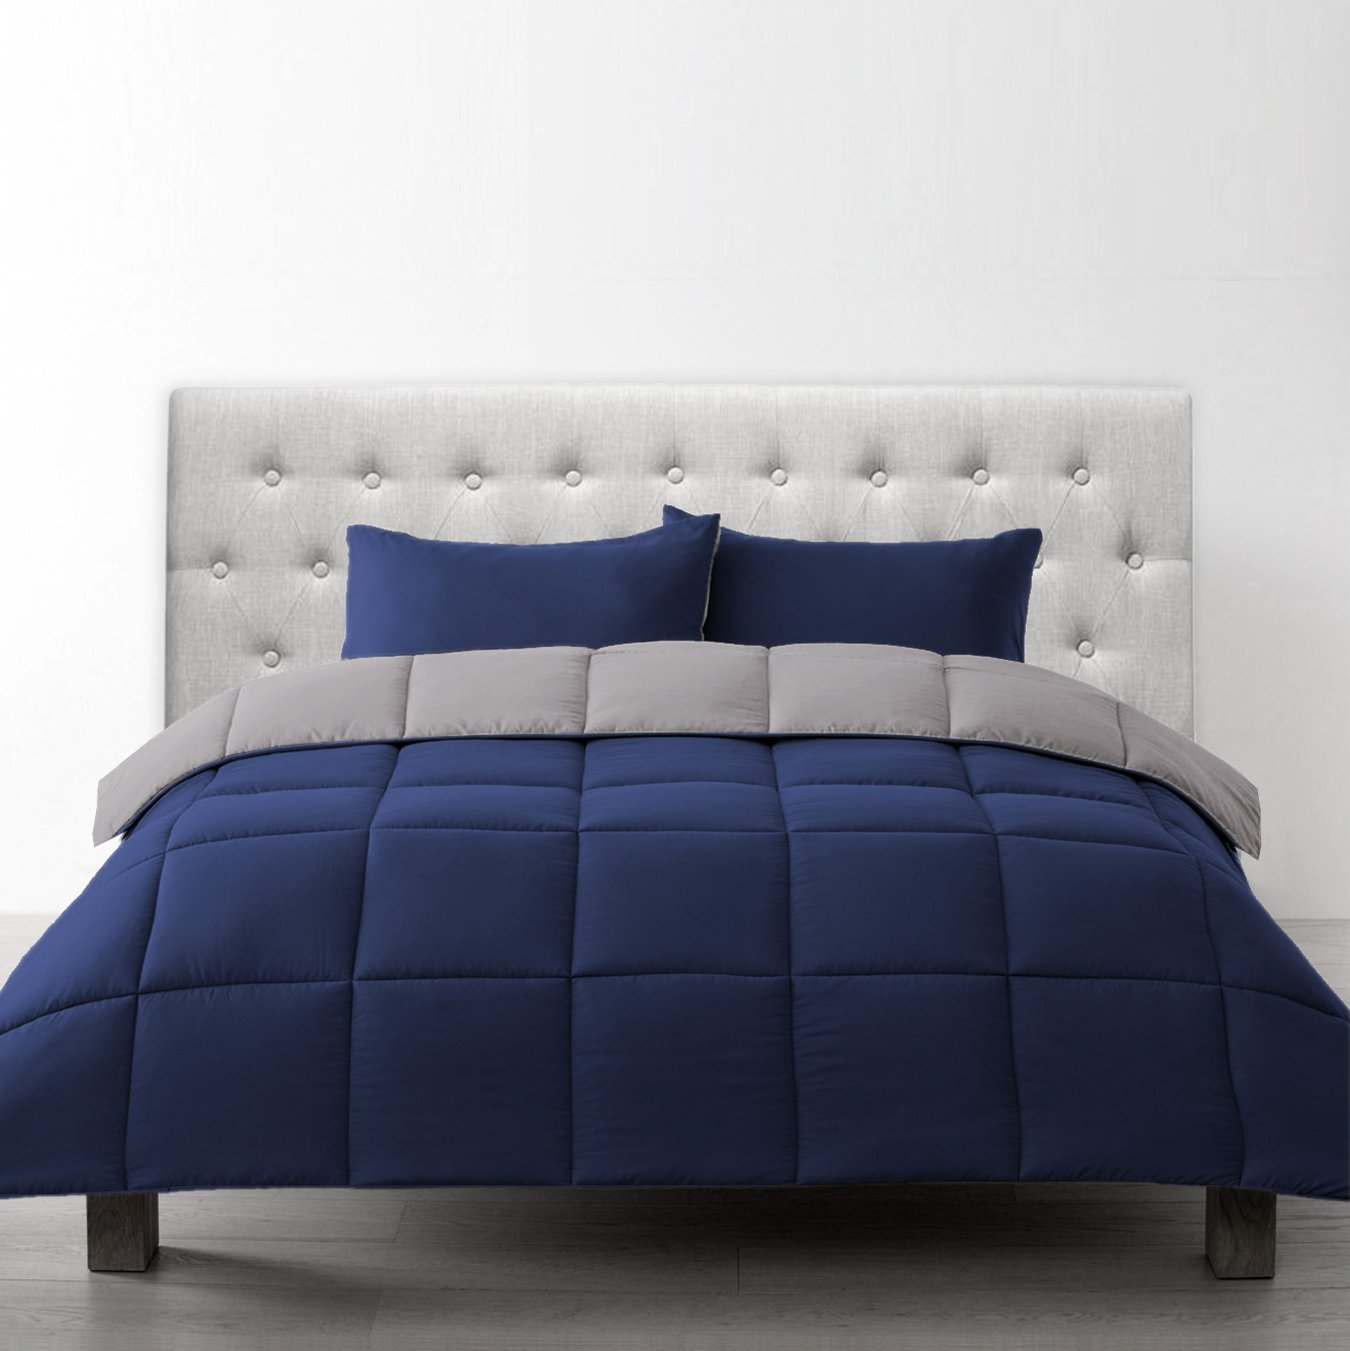 Bien Living All-Season 3 Piece Reversible Down Alternative Quilted Comforter Duvet - Ultra Soft Lightweight Hypoallergenic - Box Stitched Hotel Quality - Navy/Light Grey - Full/Queen